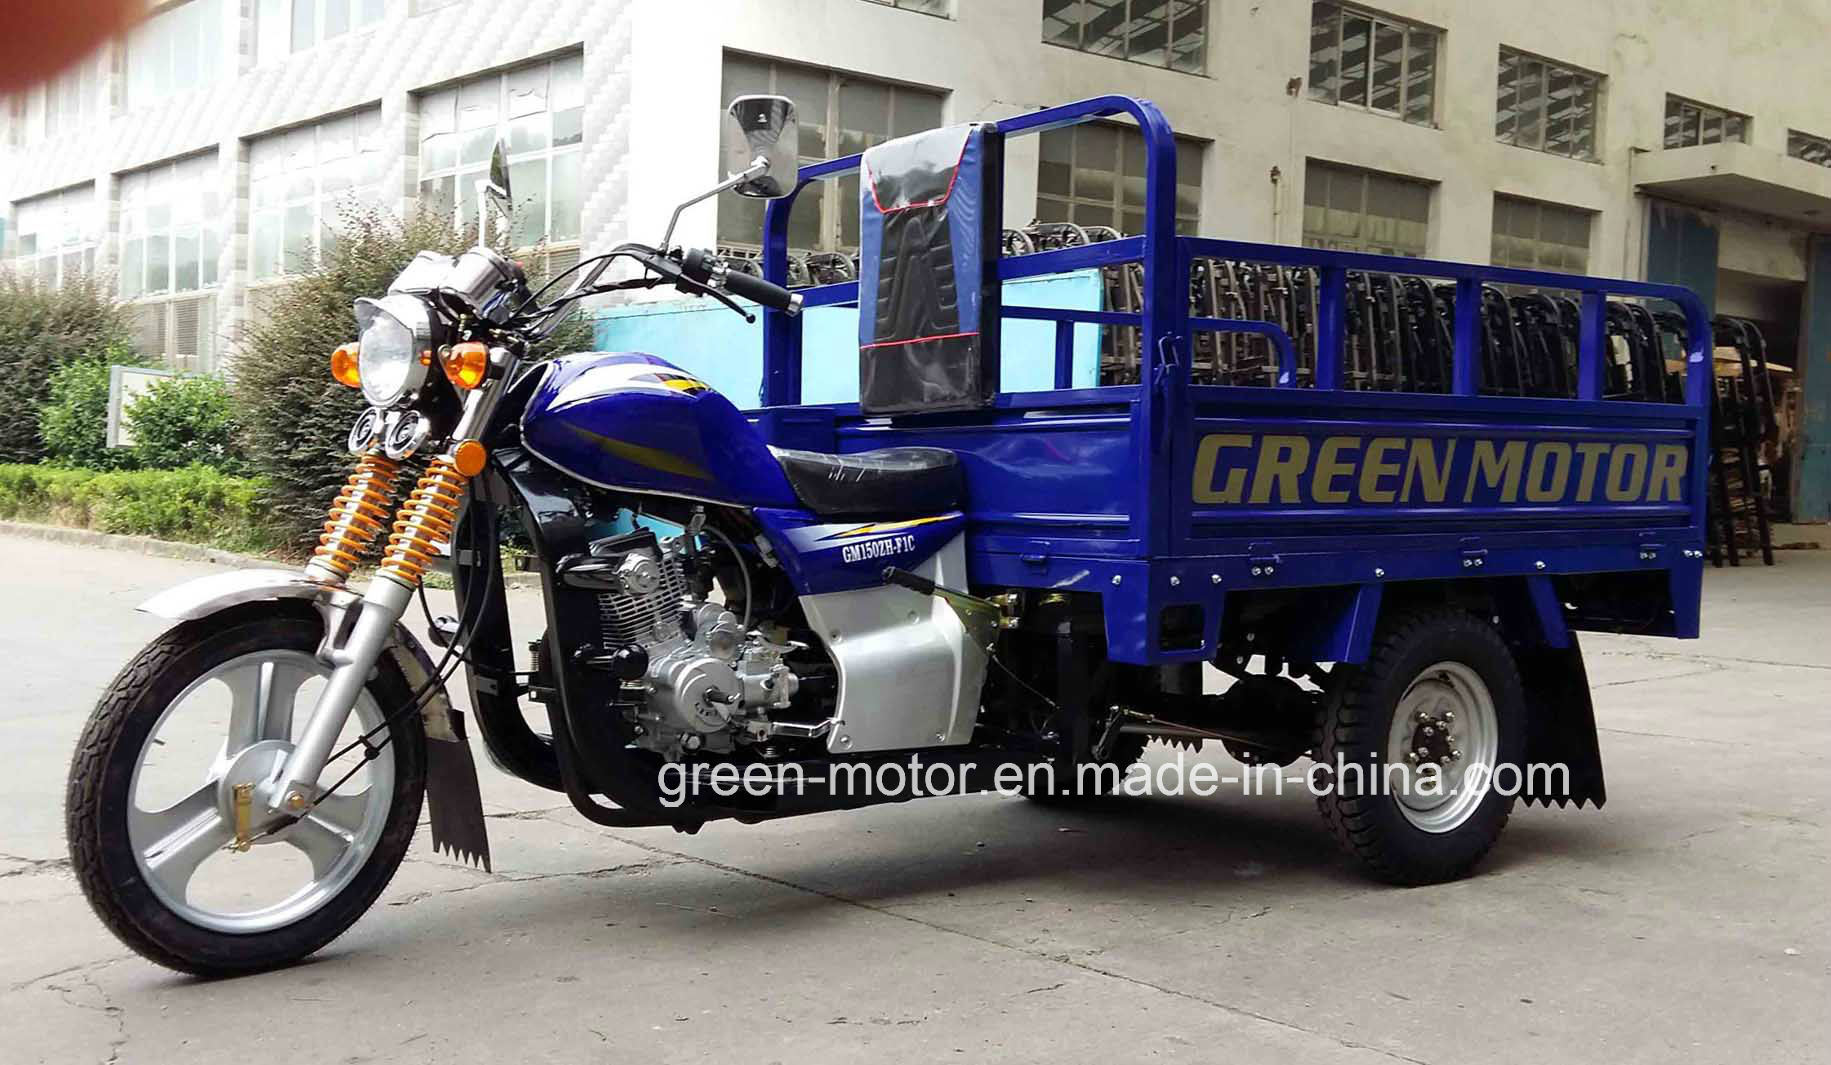 200cc/150cc/250cc Three Wheel Motorcycle (GM200zh-F1C)